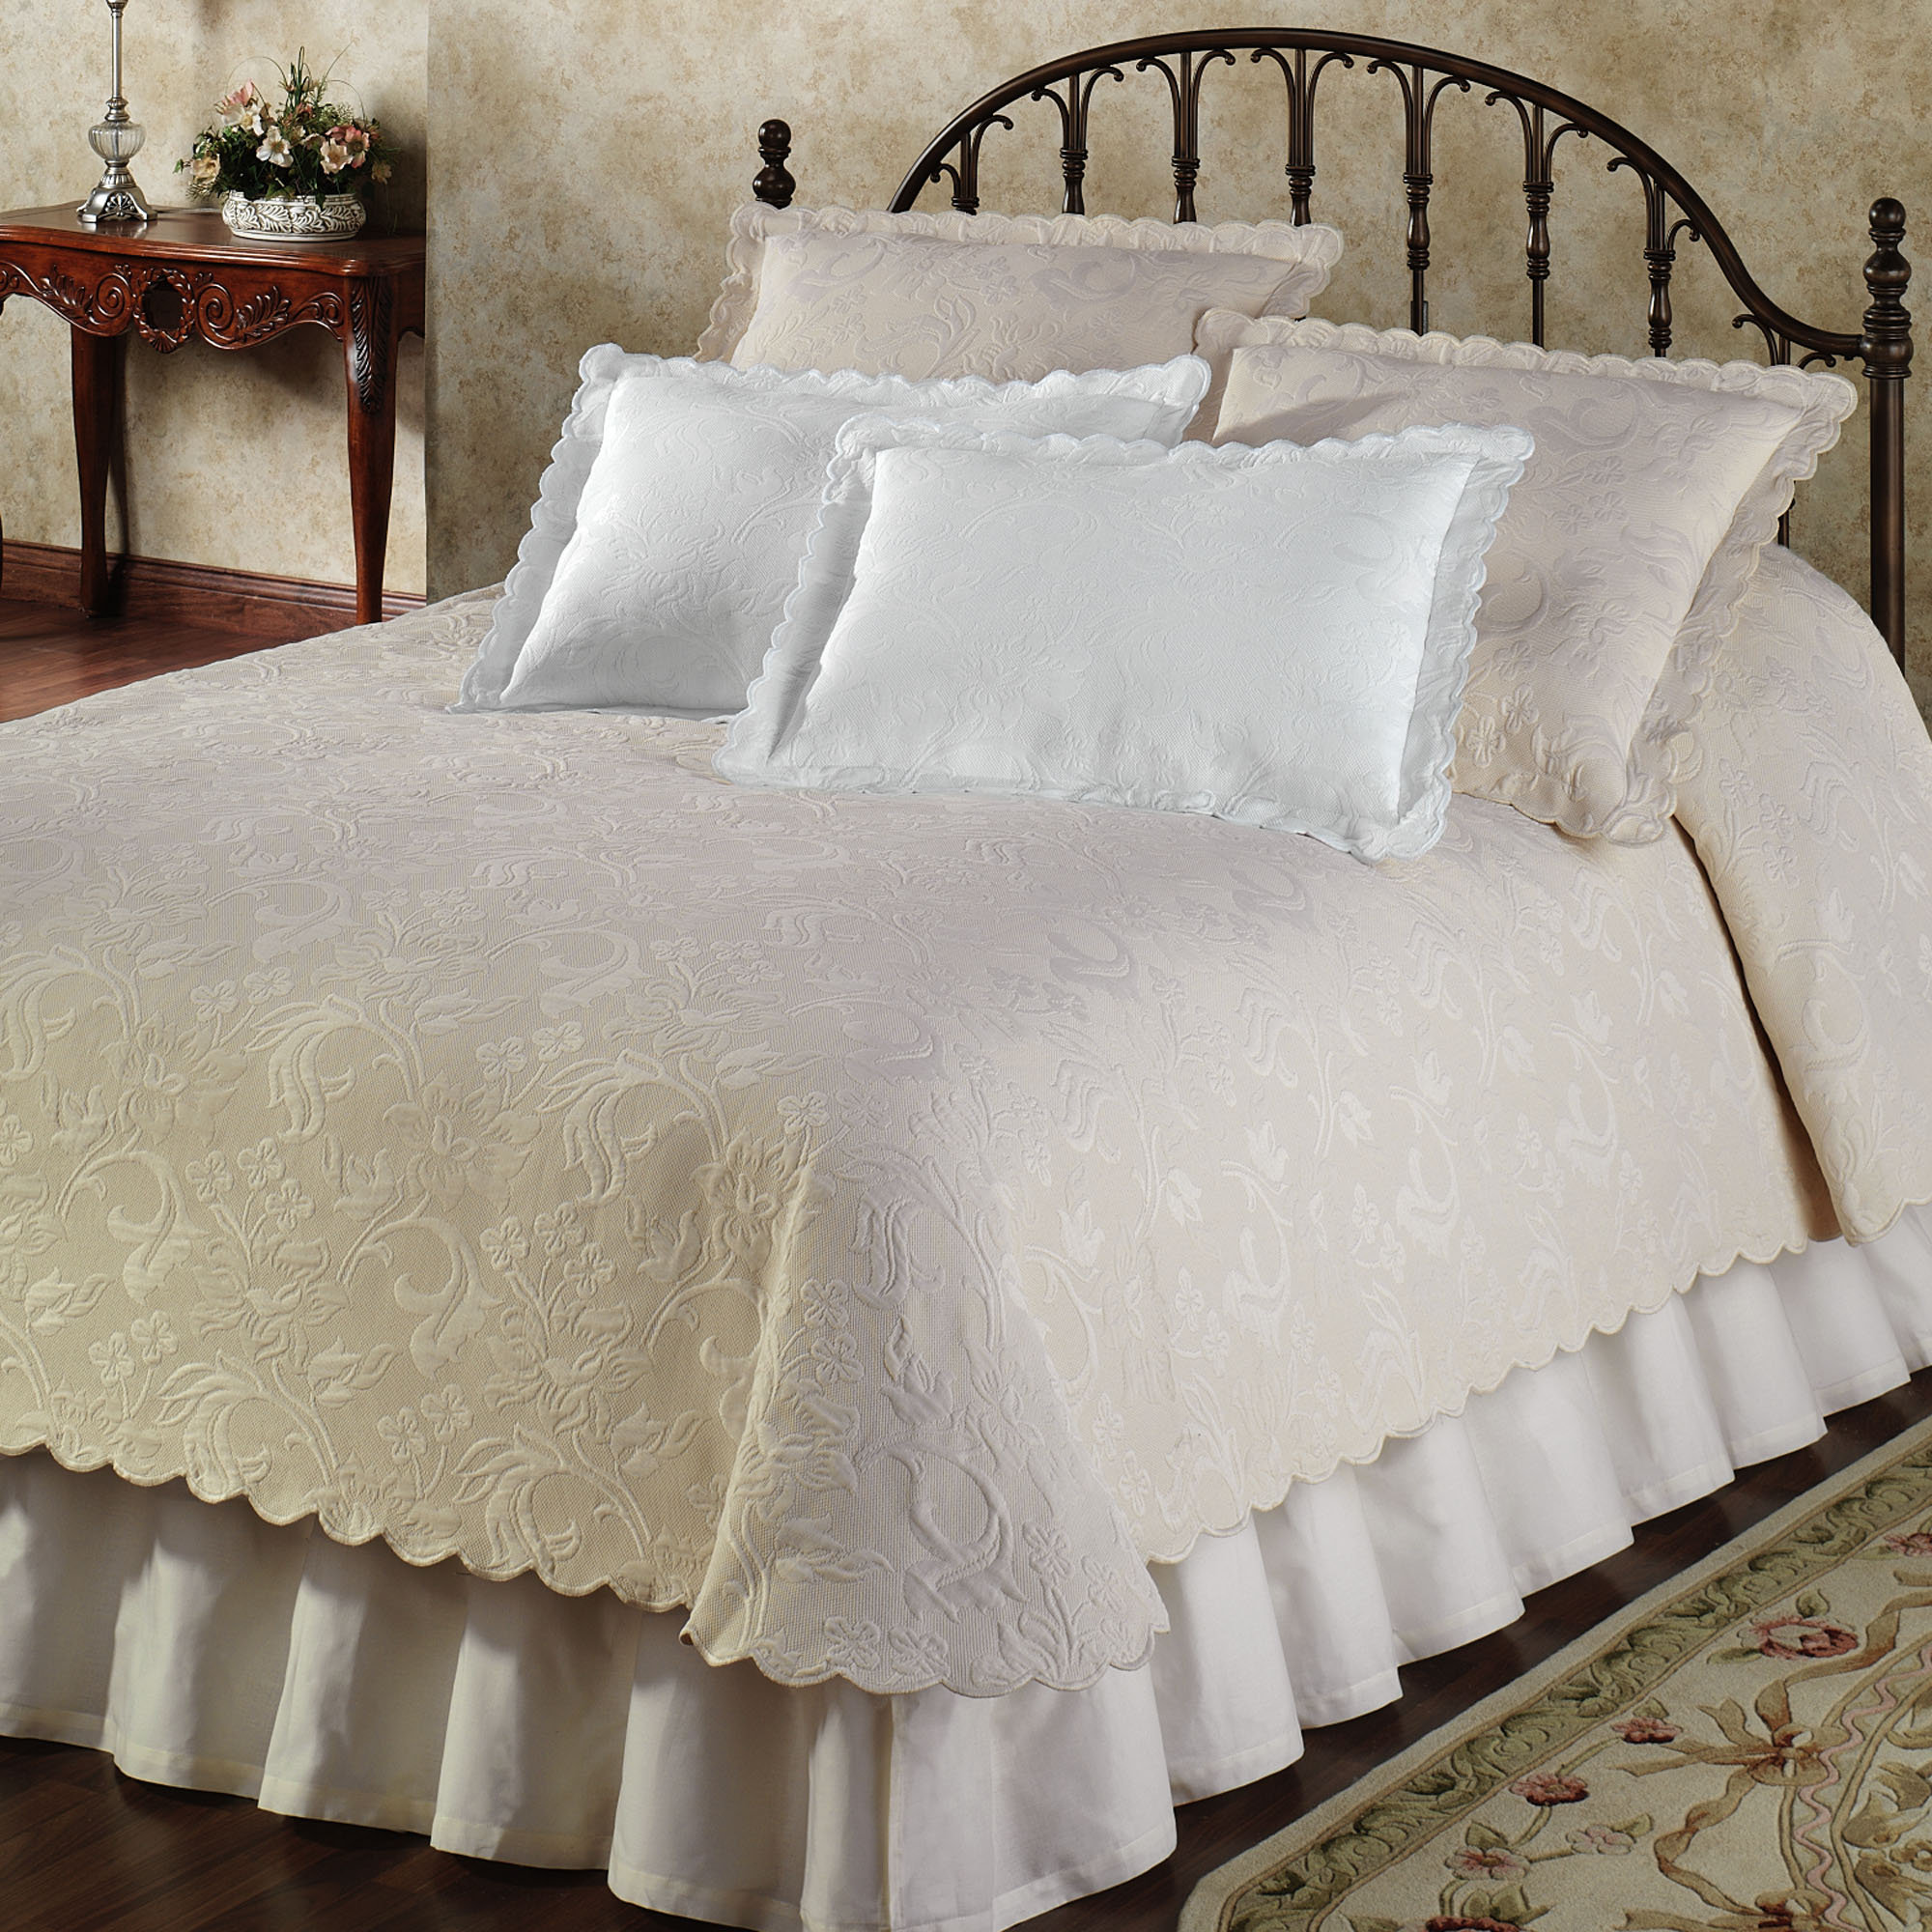 King Size Coverlet Australia Coverlet Vs Quilt What Is Significant Difference Homesfeed